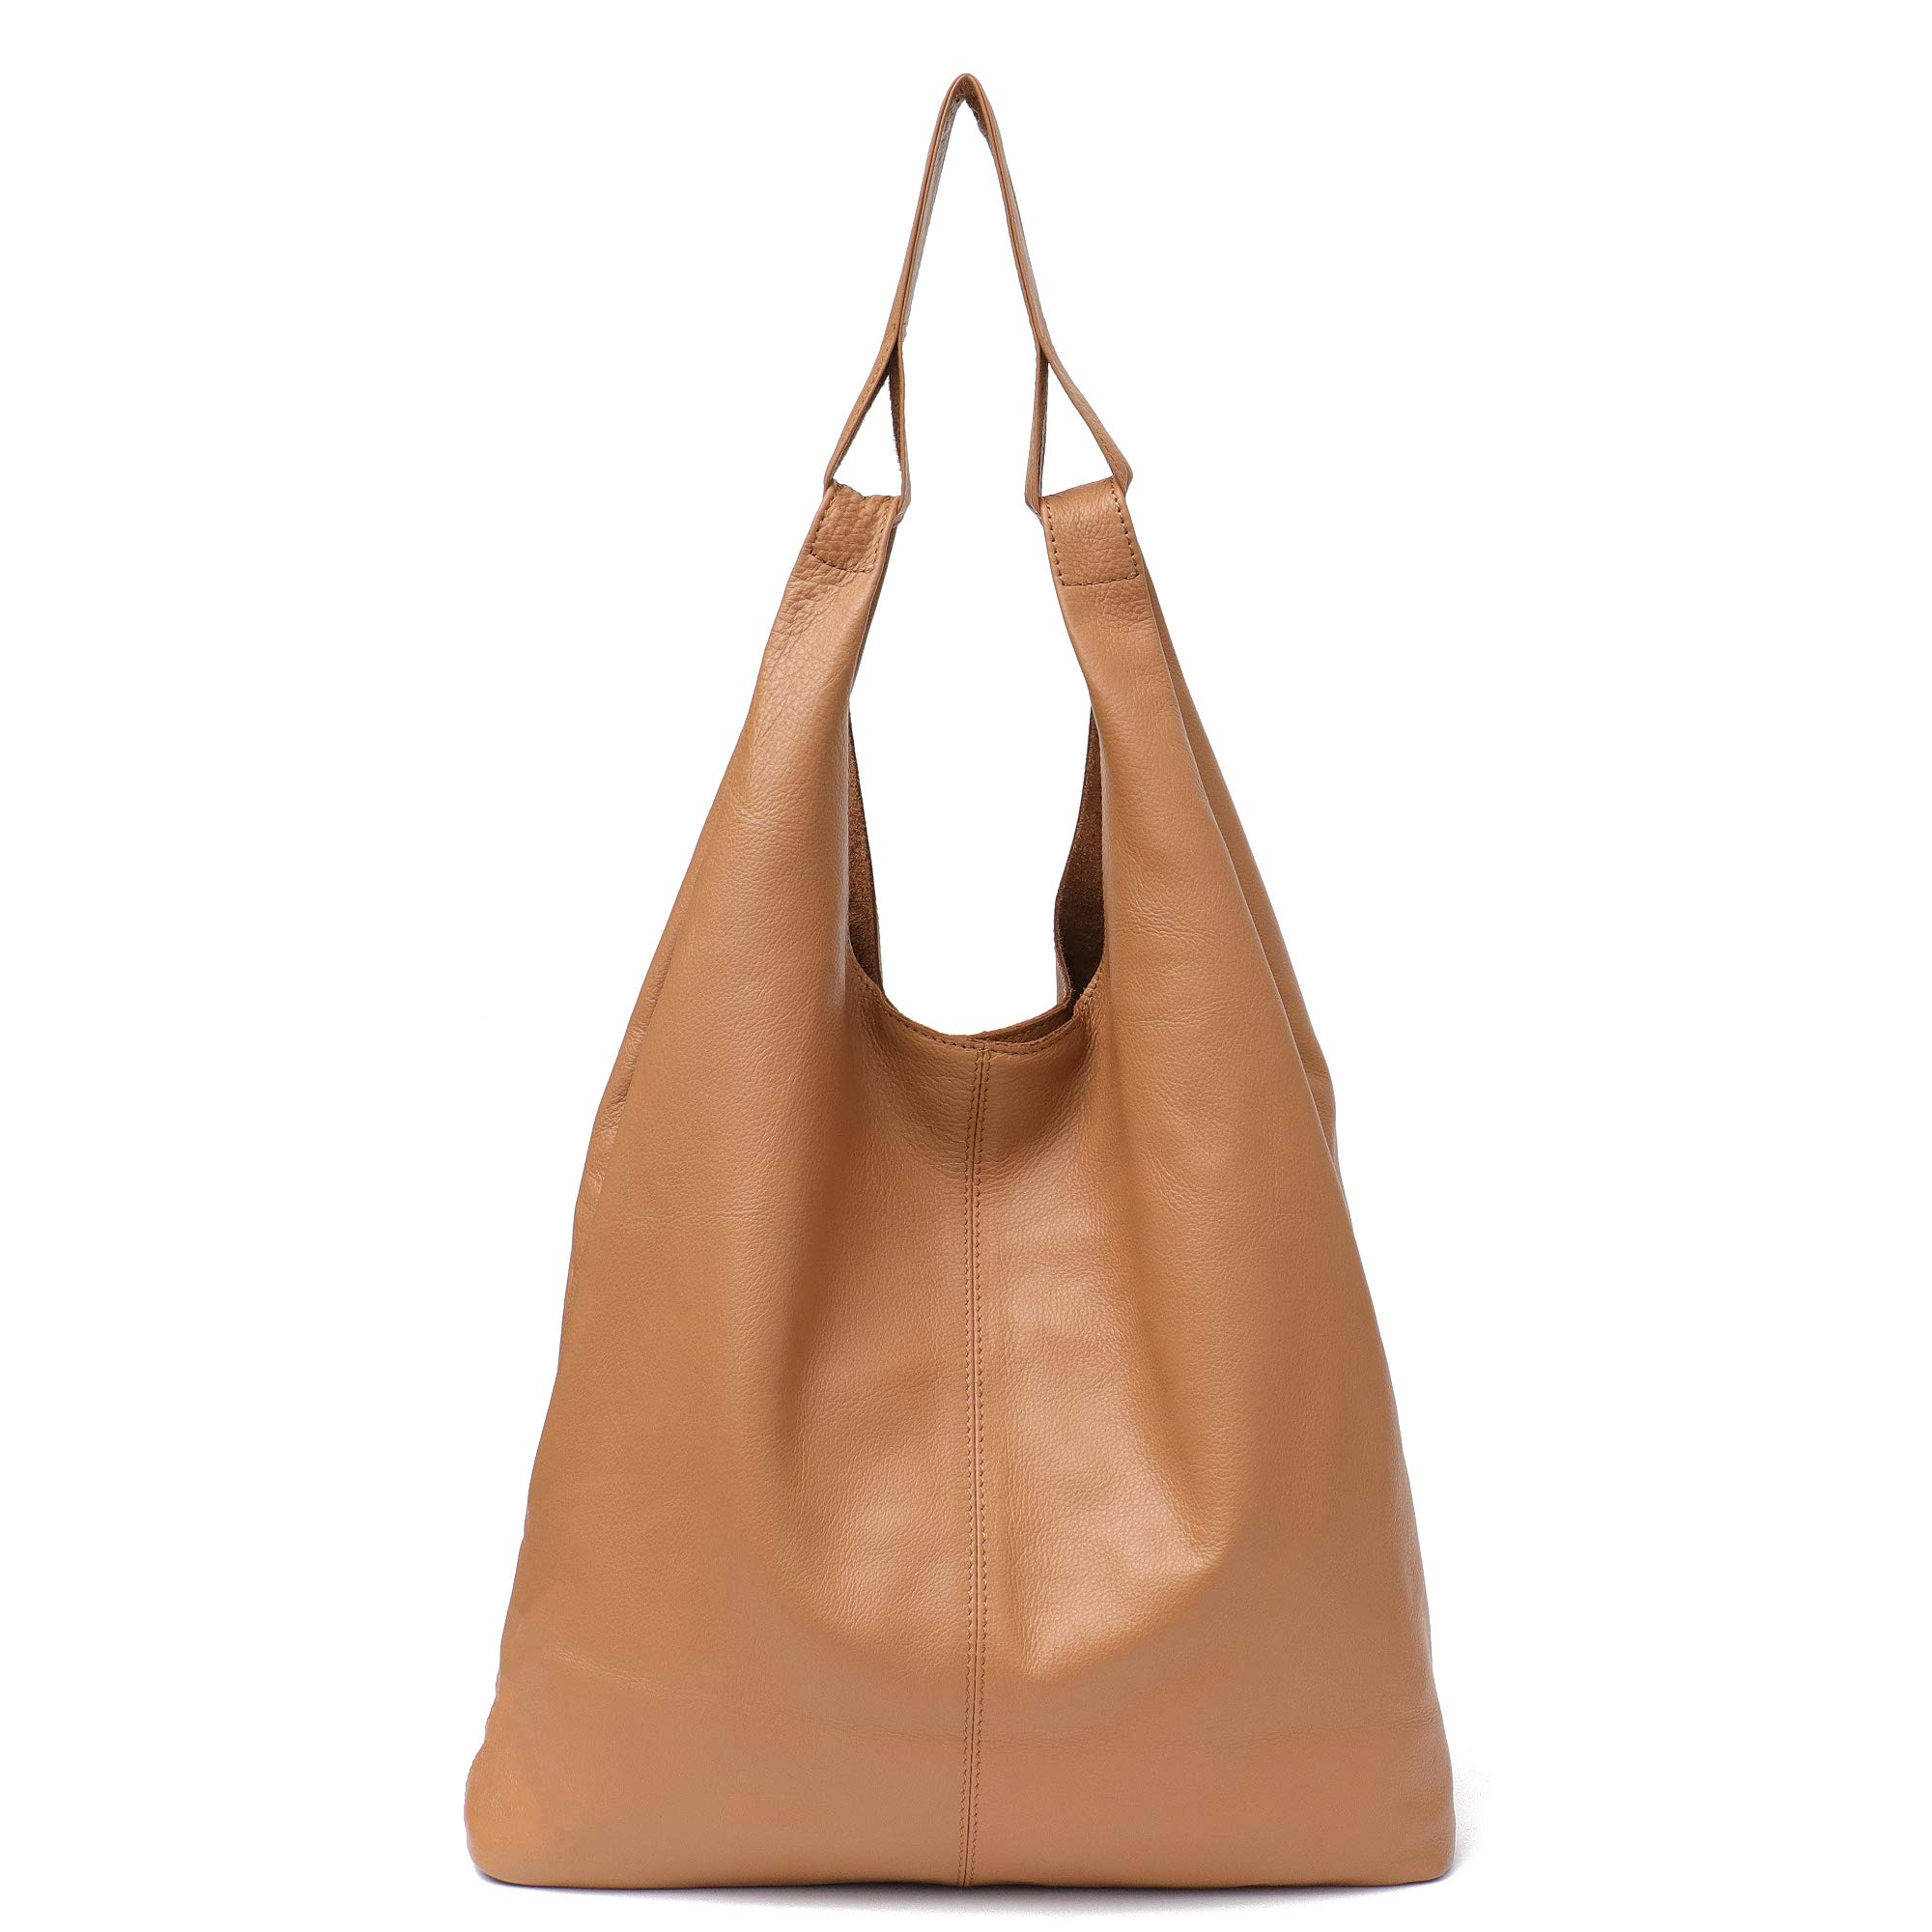 Women's Hobo Handbag STEPHIECATH Italian Genuine Leather Slouchy Shoulder Bag Large Casual Vintage Style Tote Bags (CAMEL)